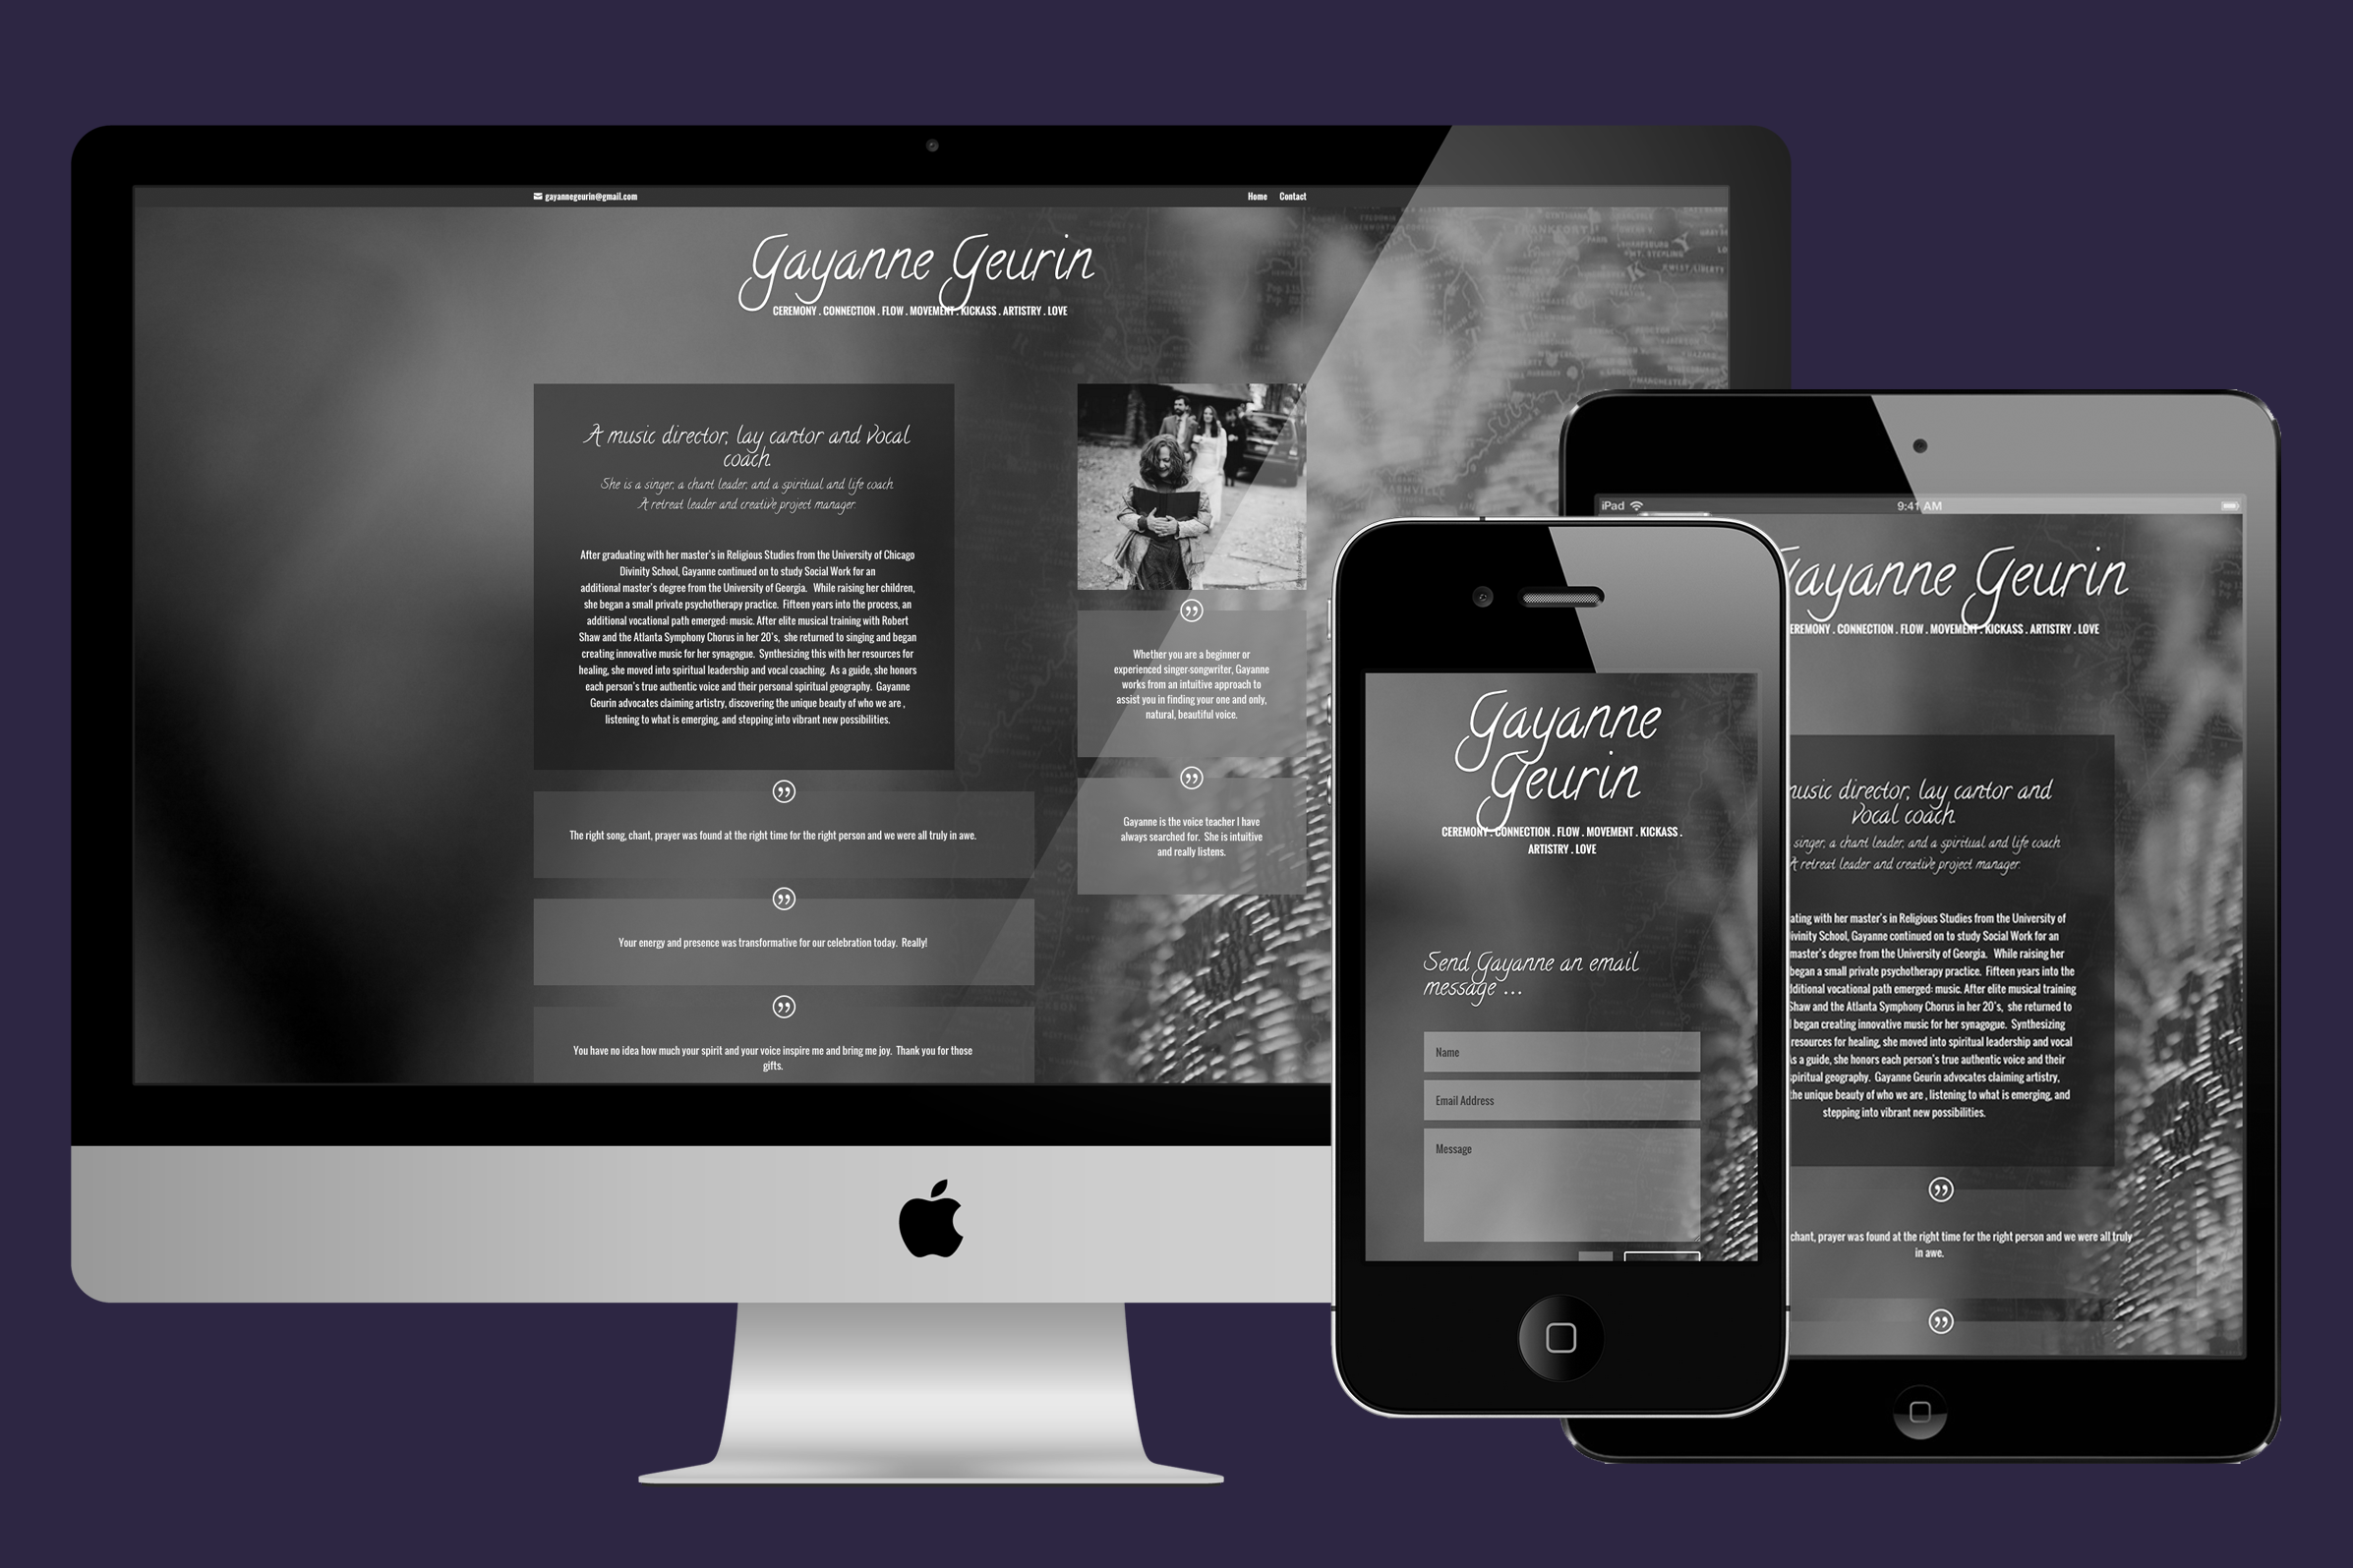 Website Designer for Gayanne Geurin